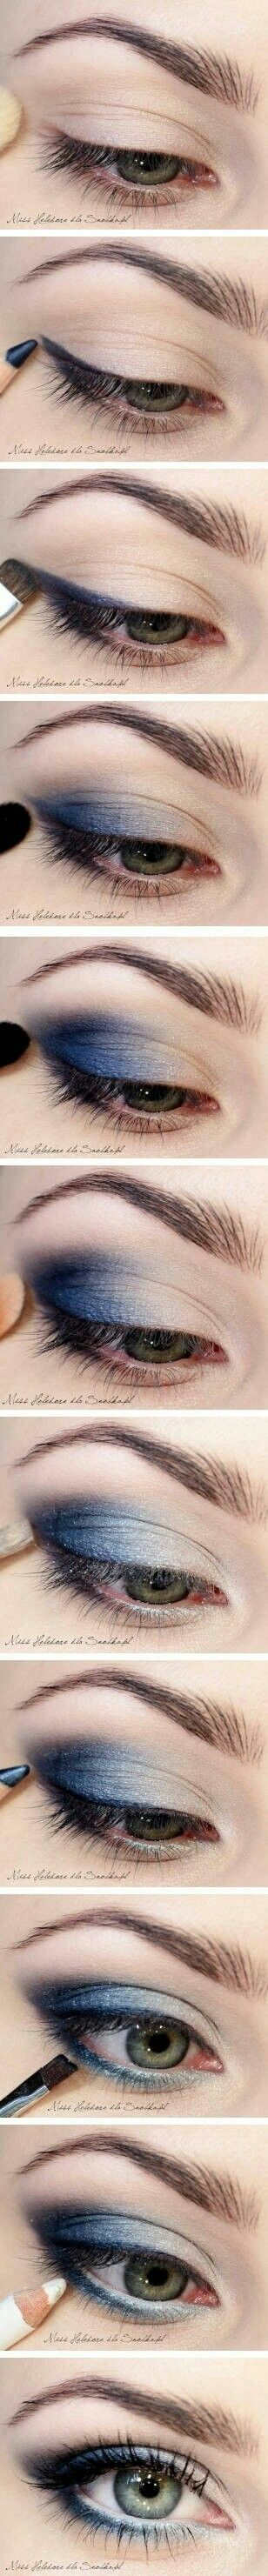 Love the blue, but think this look could work with lots of different colors.